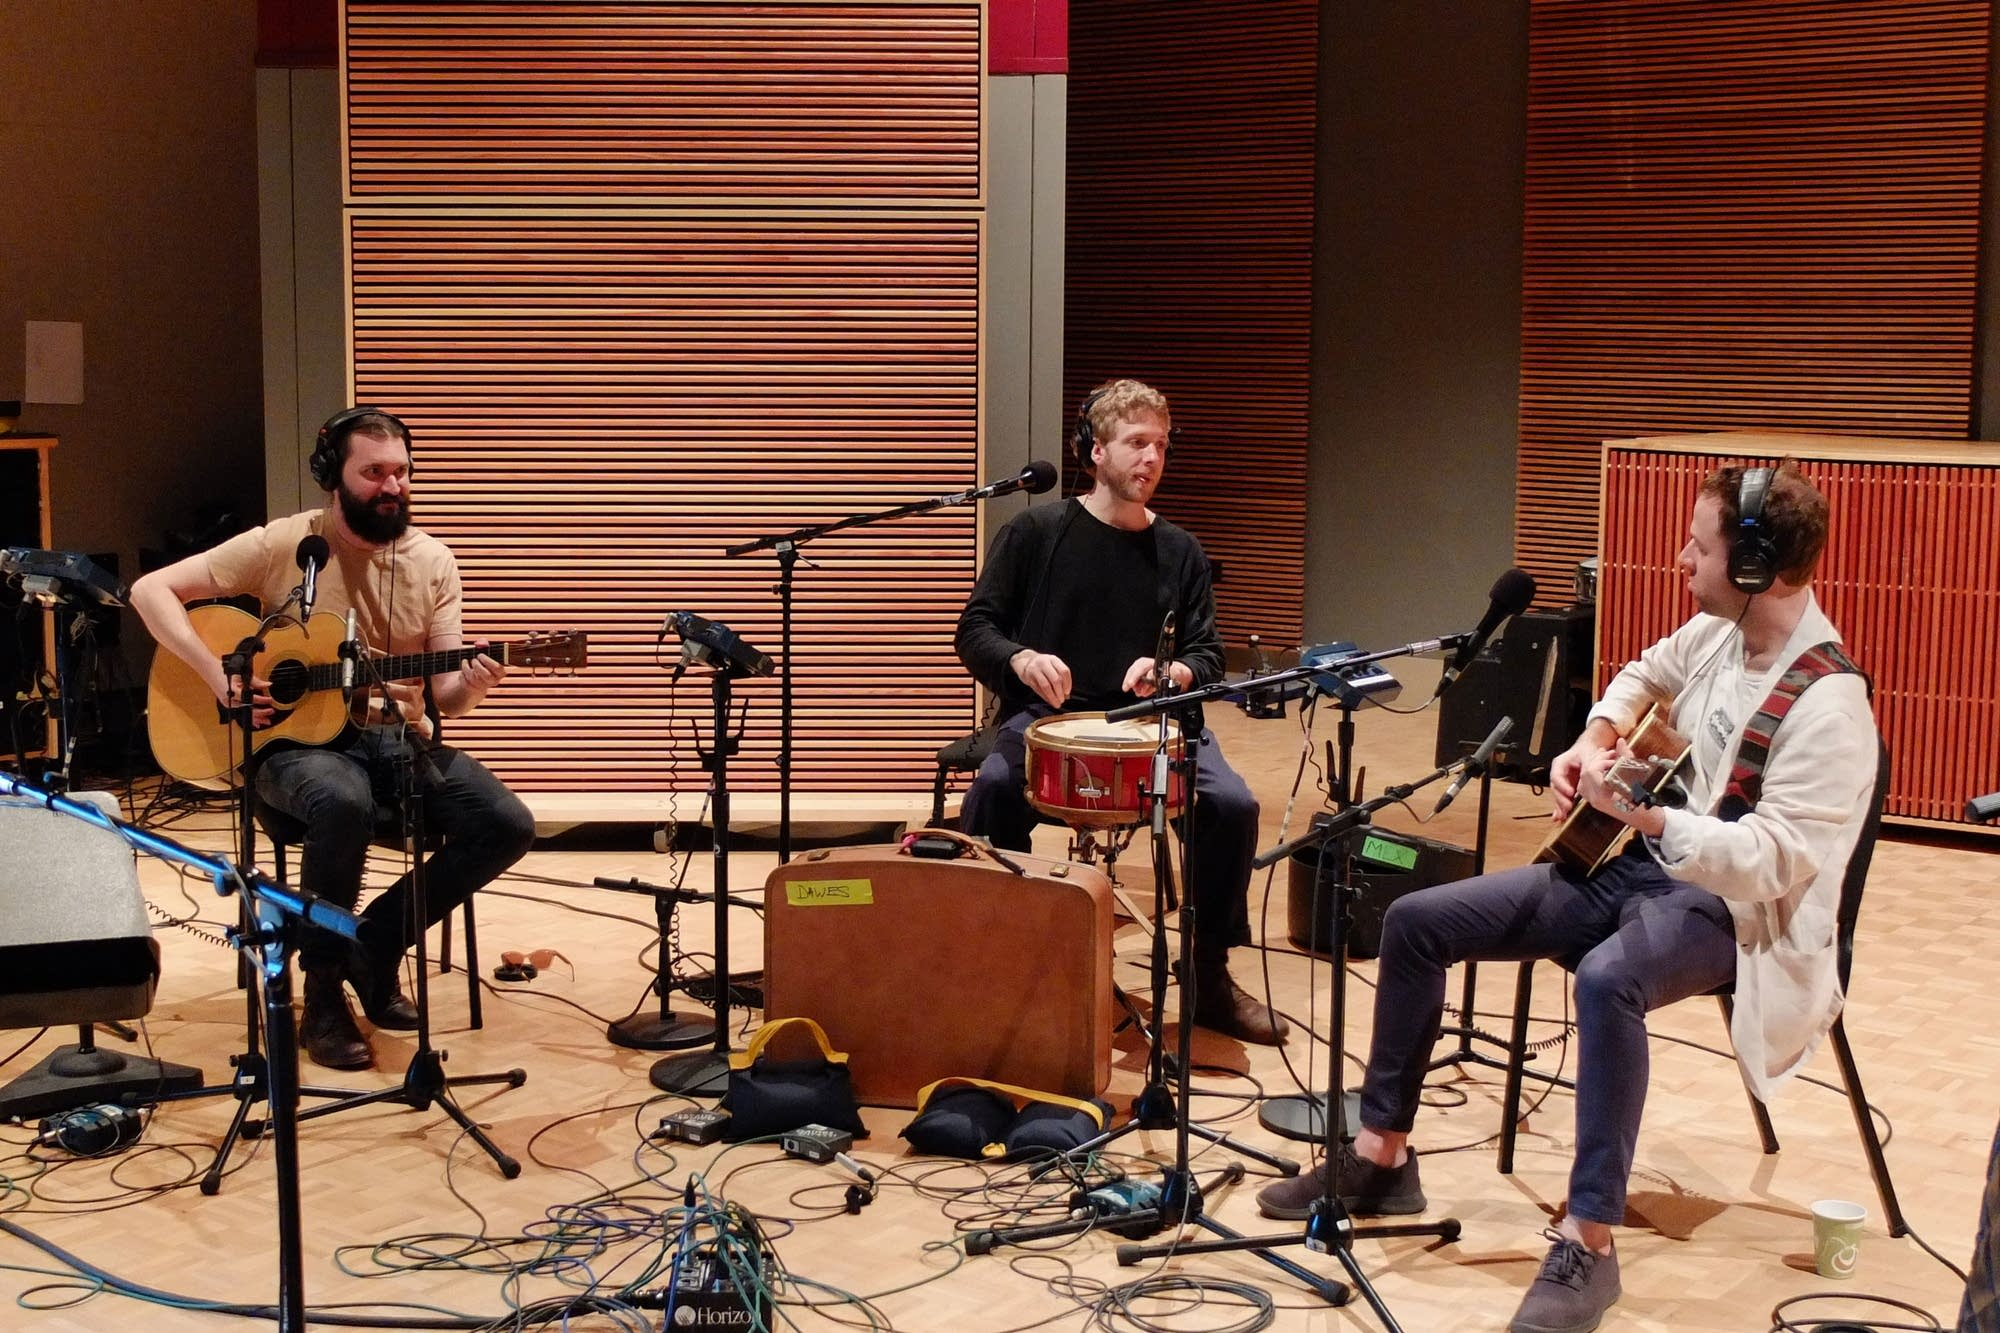 Dawes perform an acoustic set at The Current